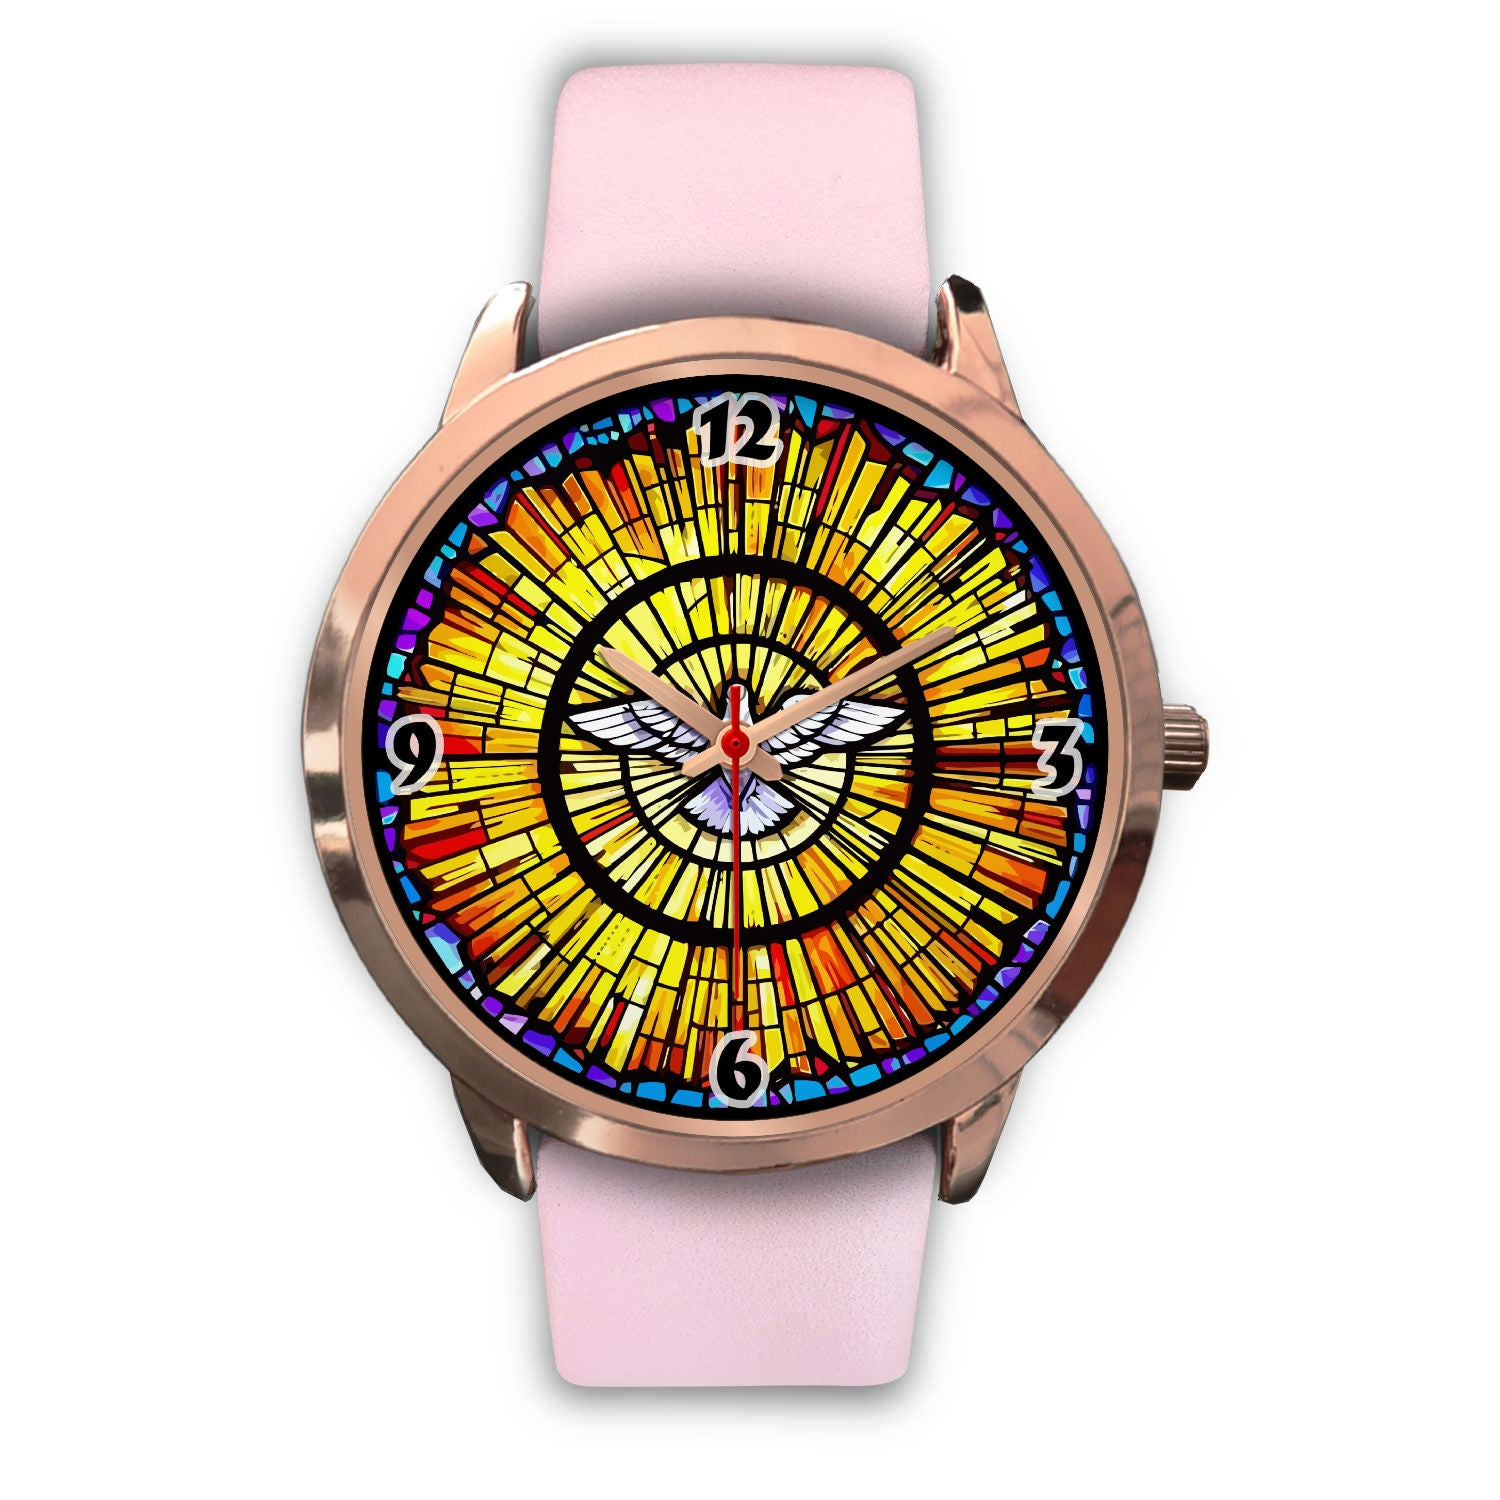 VIRA Awesome Rose Gold Watch For Jesus Christ Lovers